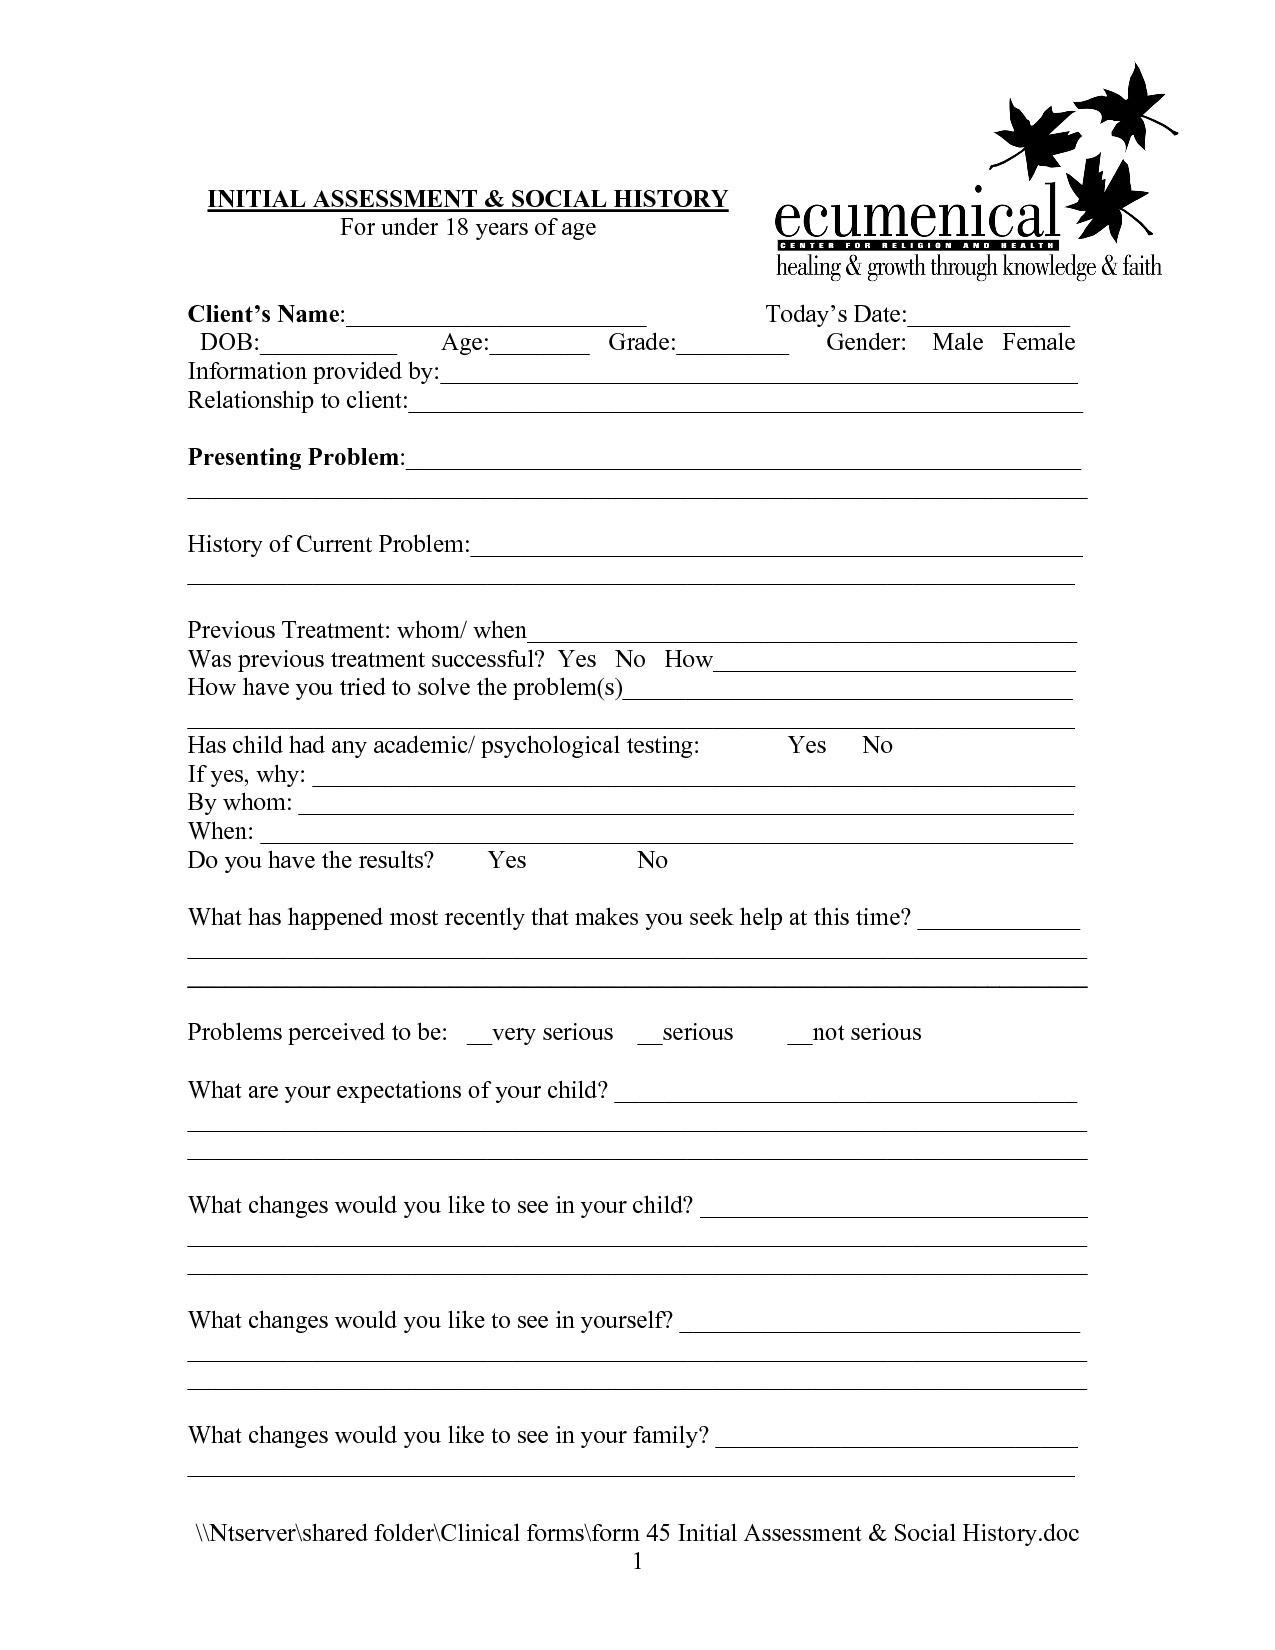 Social Work Intake Form Template  Google Search  Rec Therapy